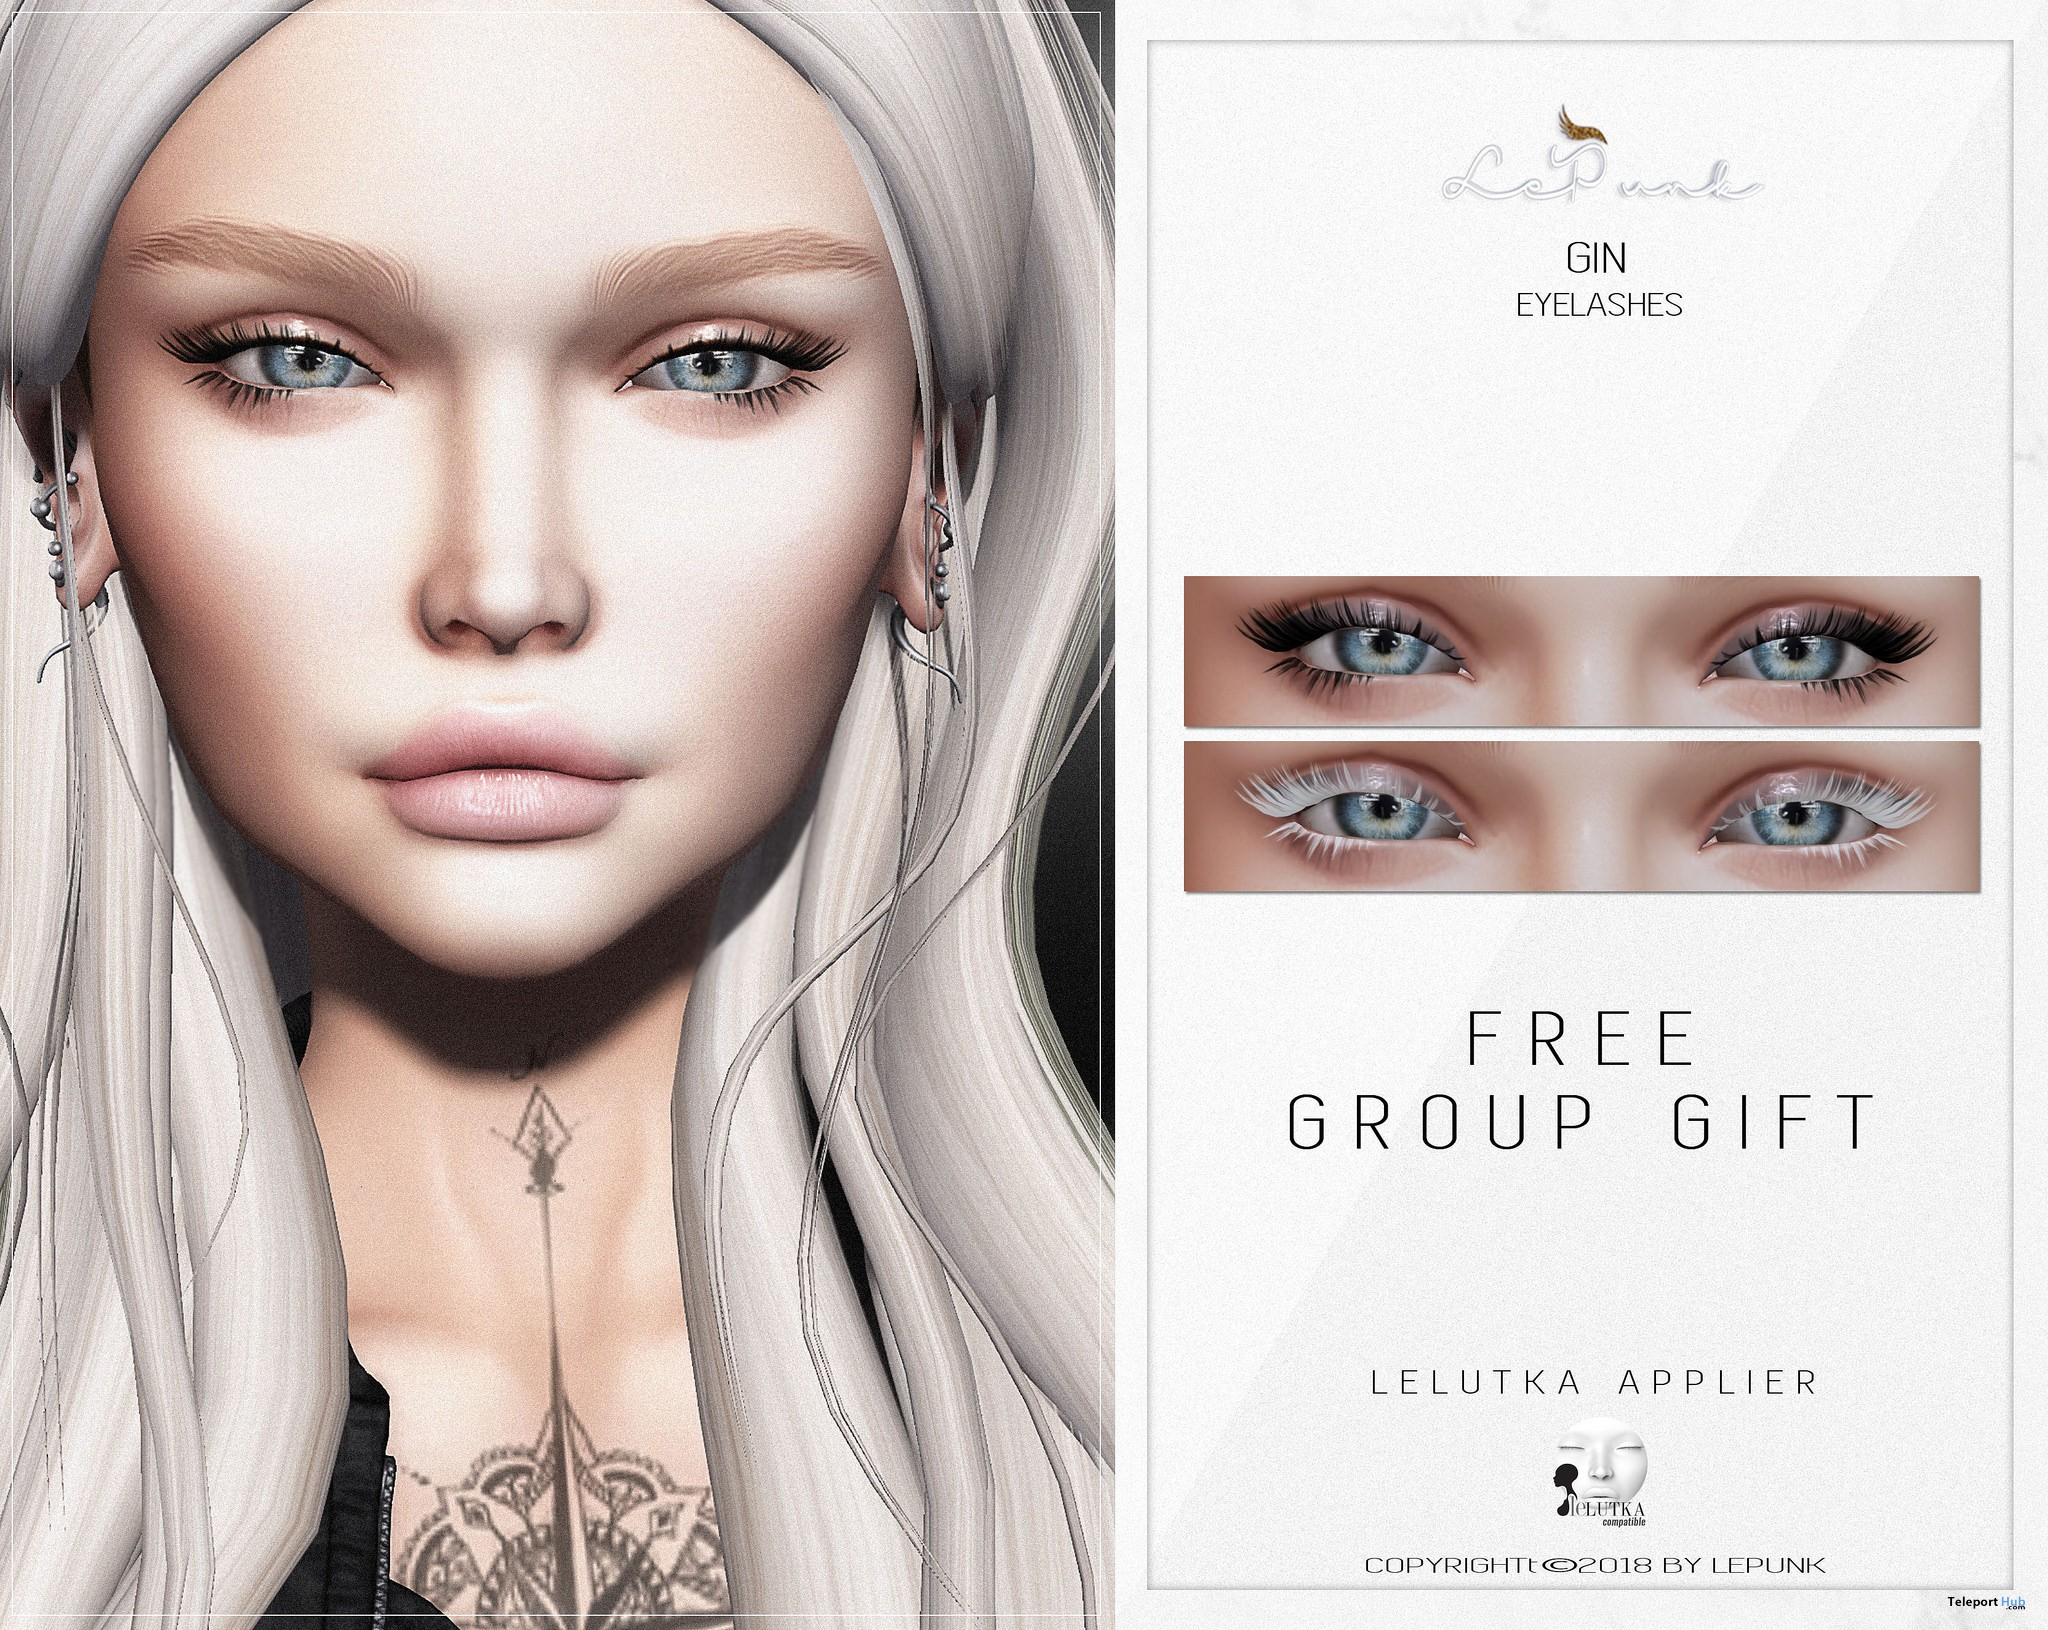 Gin Eyelashes For Lelutka Head May 2018 Group Gift by LePunk - Teleport Hub - teleporthub.com